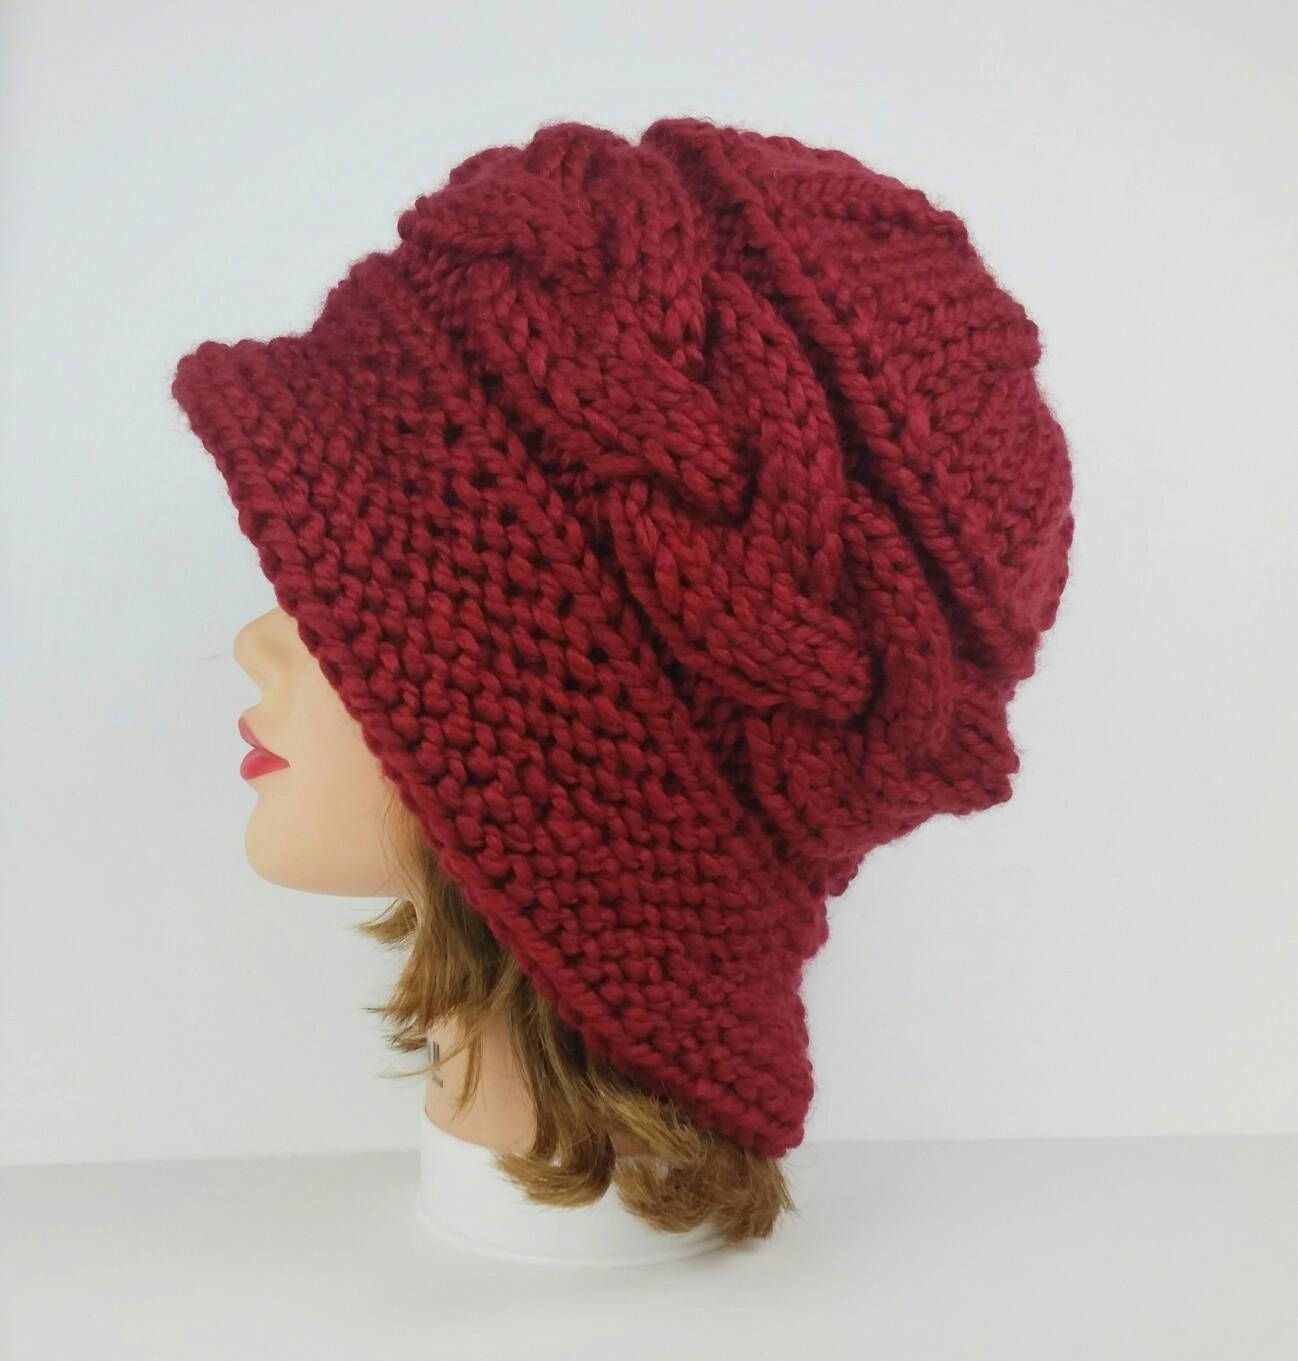 d287596704b Knit Cloche Hat - 1920s Hats - Cable Knit Hat - Flapper Hat - Women s  Cloche - Chunky Cloche in Russet - Red Hat - Women s Hat - Winter Hat by ...